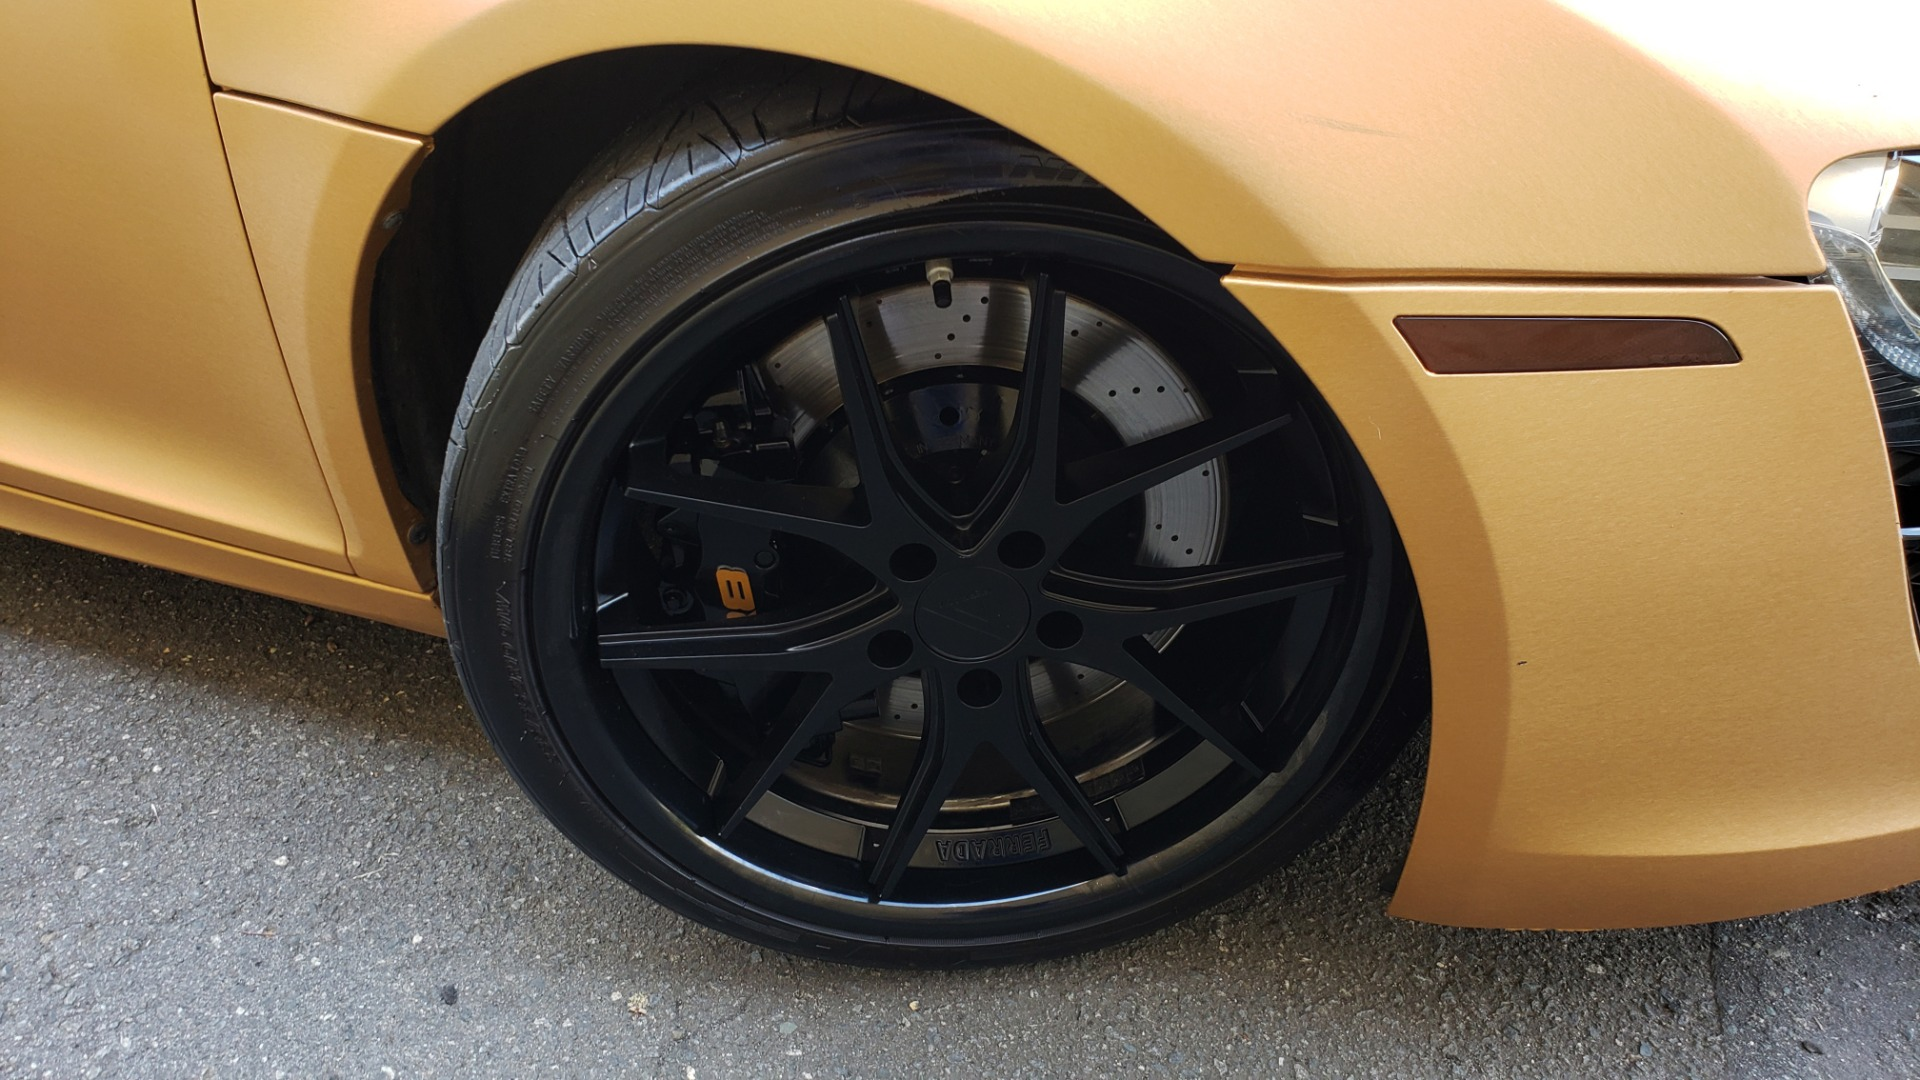 Used 2012 Audi R8 V10 5.2L / CUST WRAP BRUSHED BRONZE / NAV / B&O SOUND / CUST 19IN WHLS for sale $79,999 at Formula Imports in Charlotte NC 28227 73